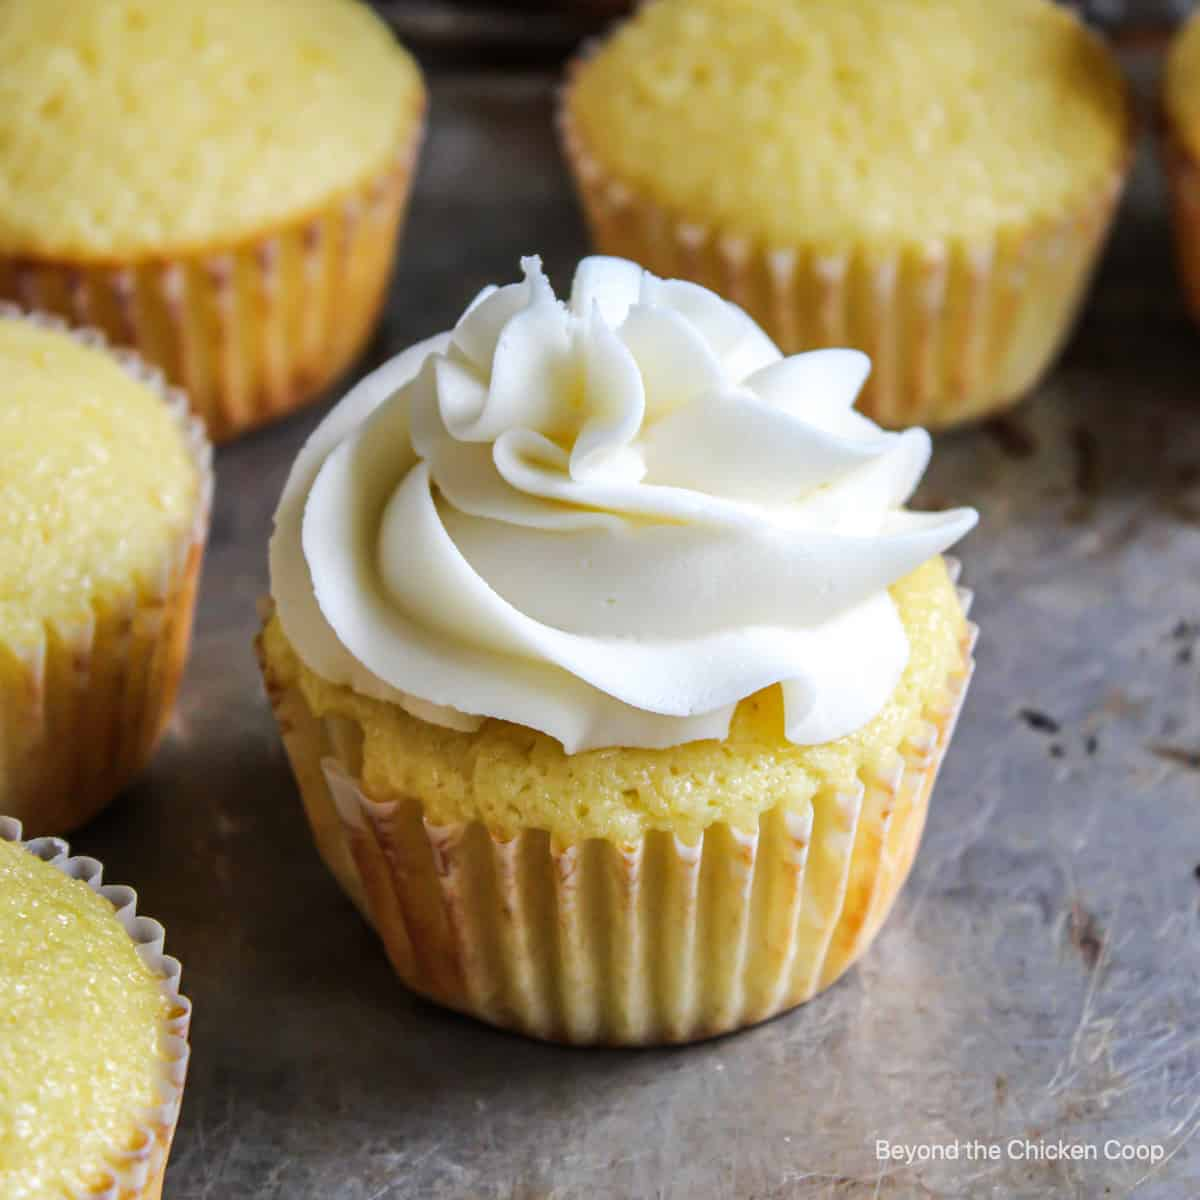 A yellow cupcake topped with a swirl of frosting.